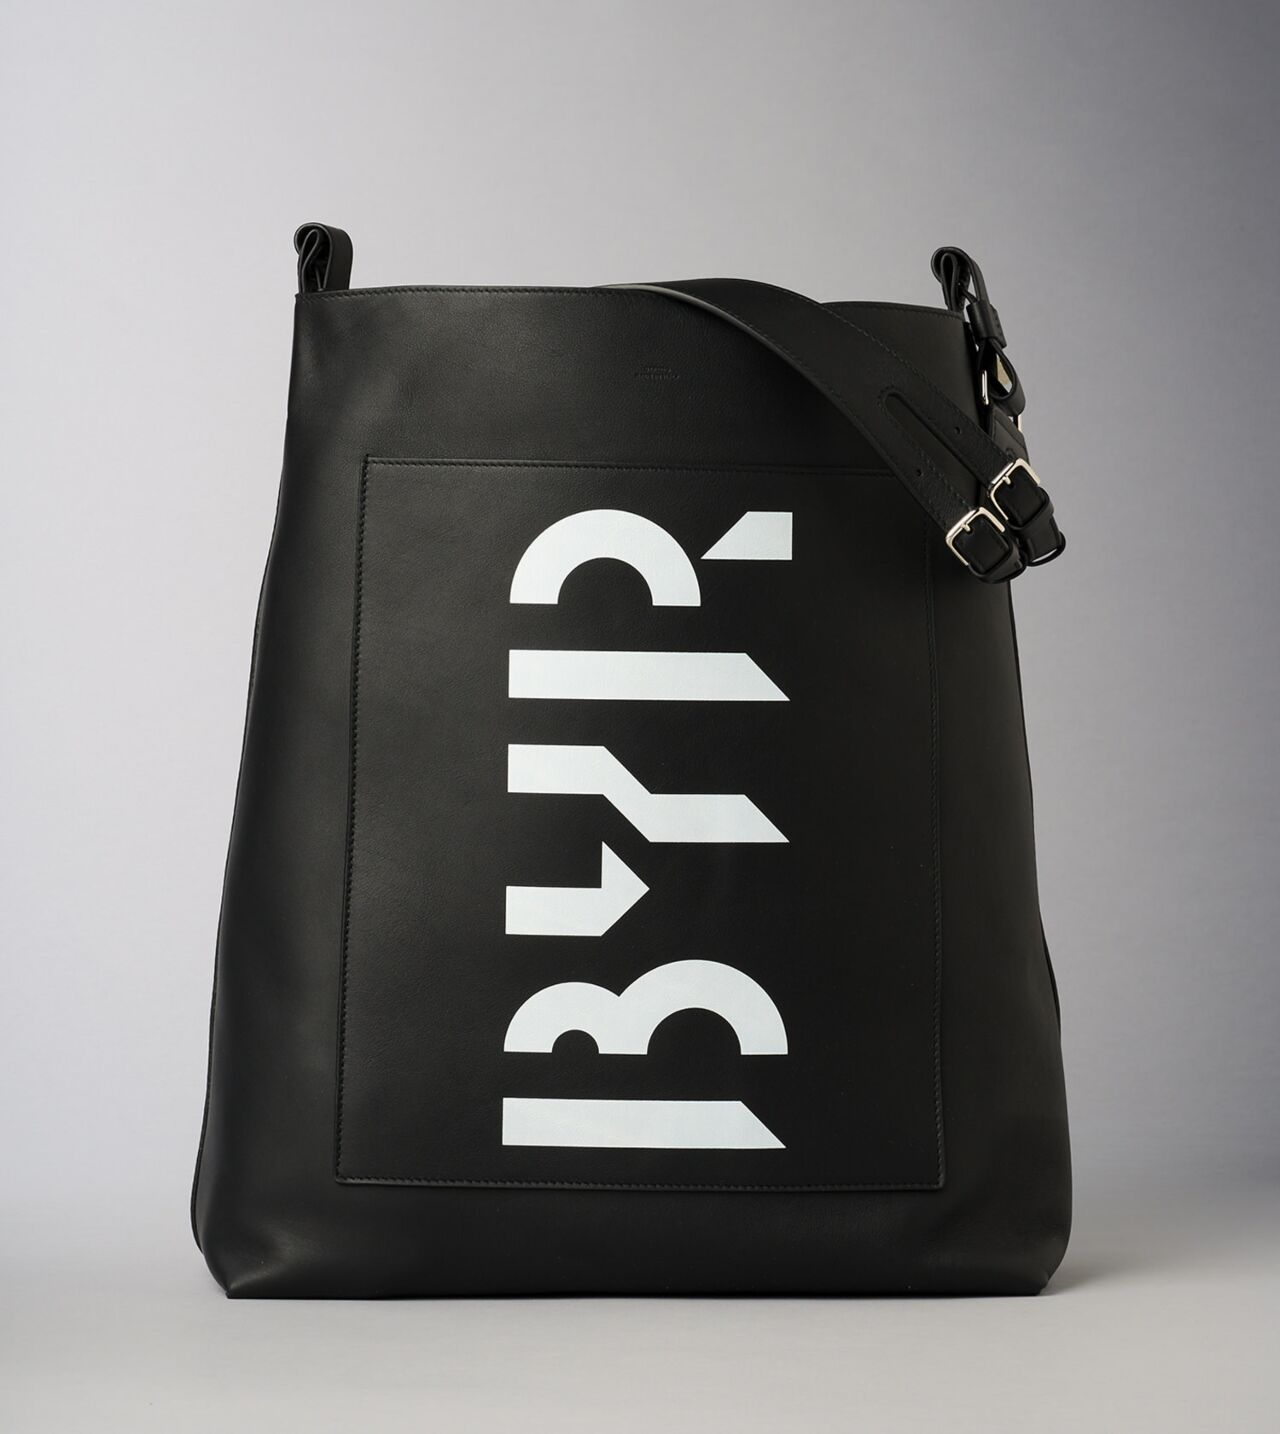 Picture of Byredo Eazy bag in Black printed leather and silver hardware